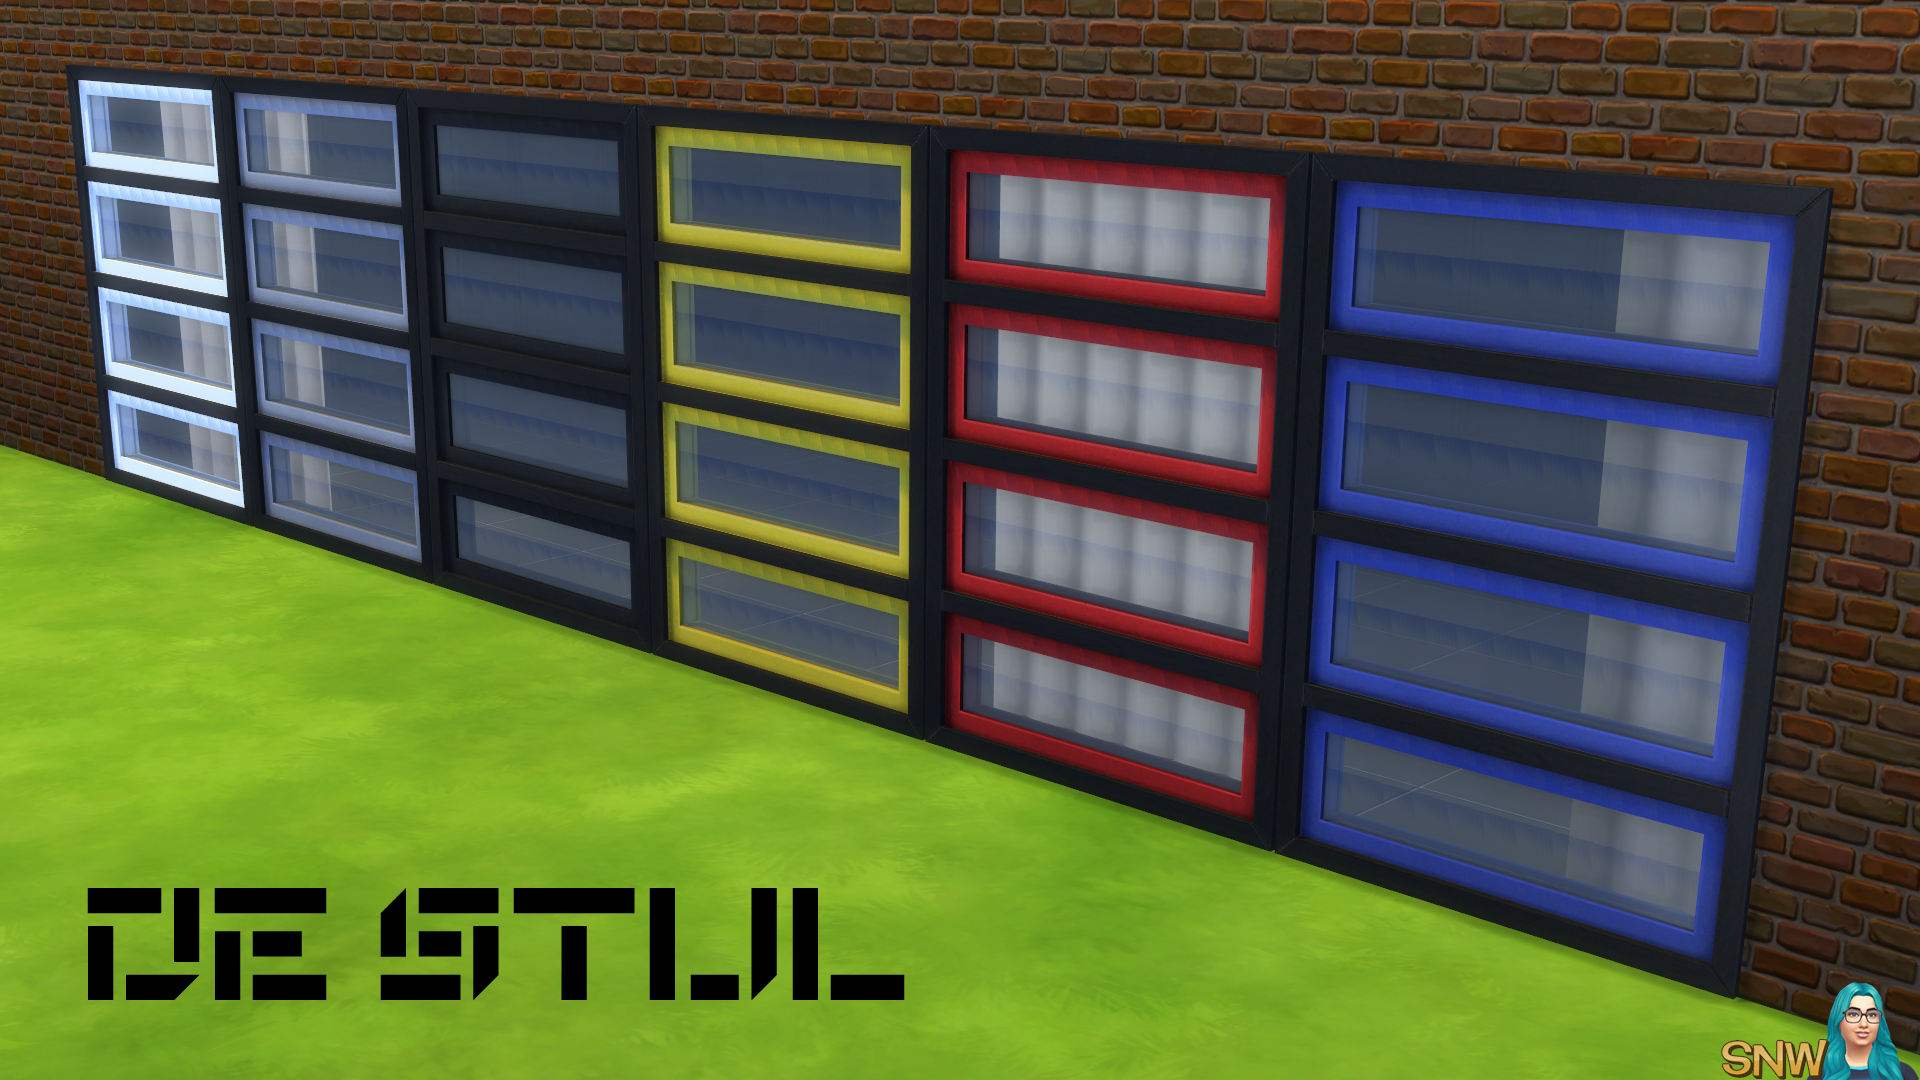 De Stijl Quadruple Window 10 Snw Simsnetwork Com